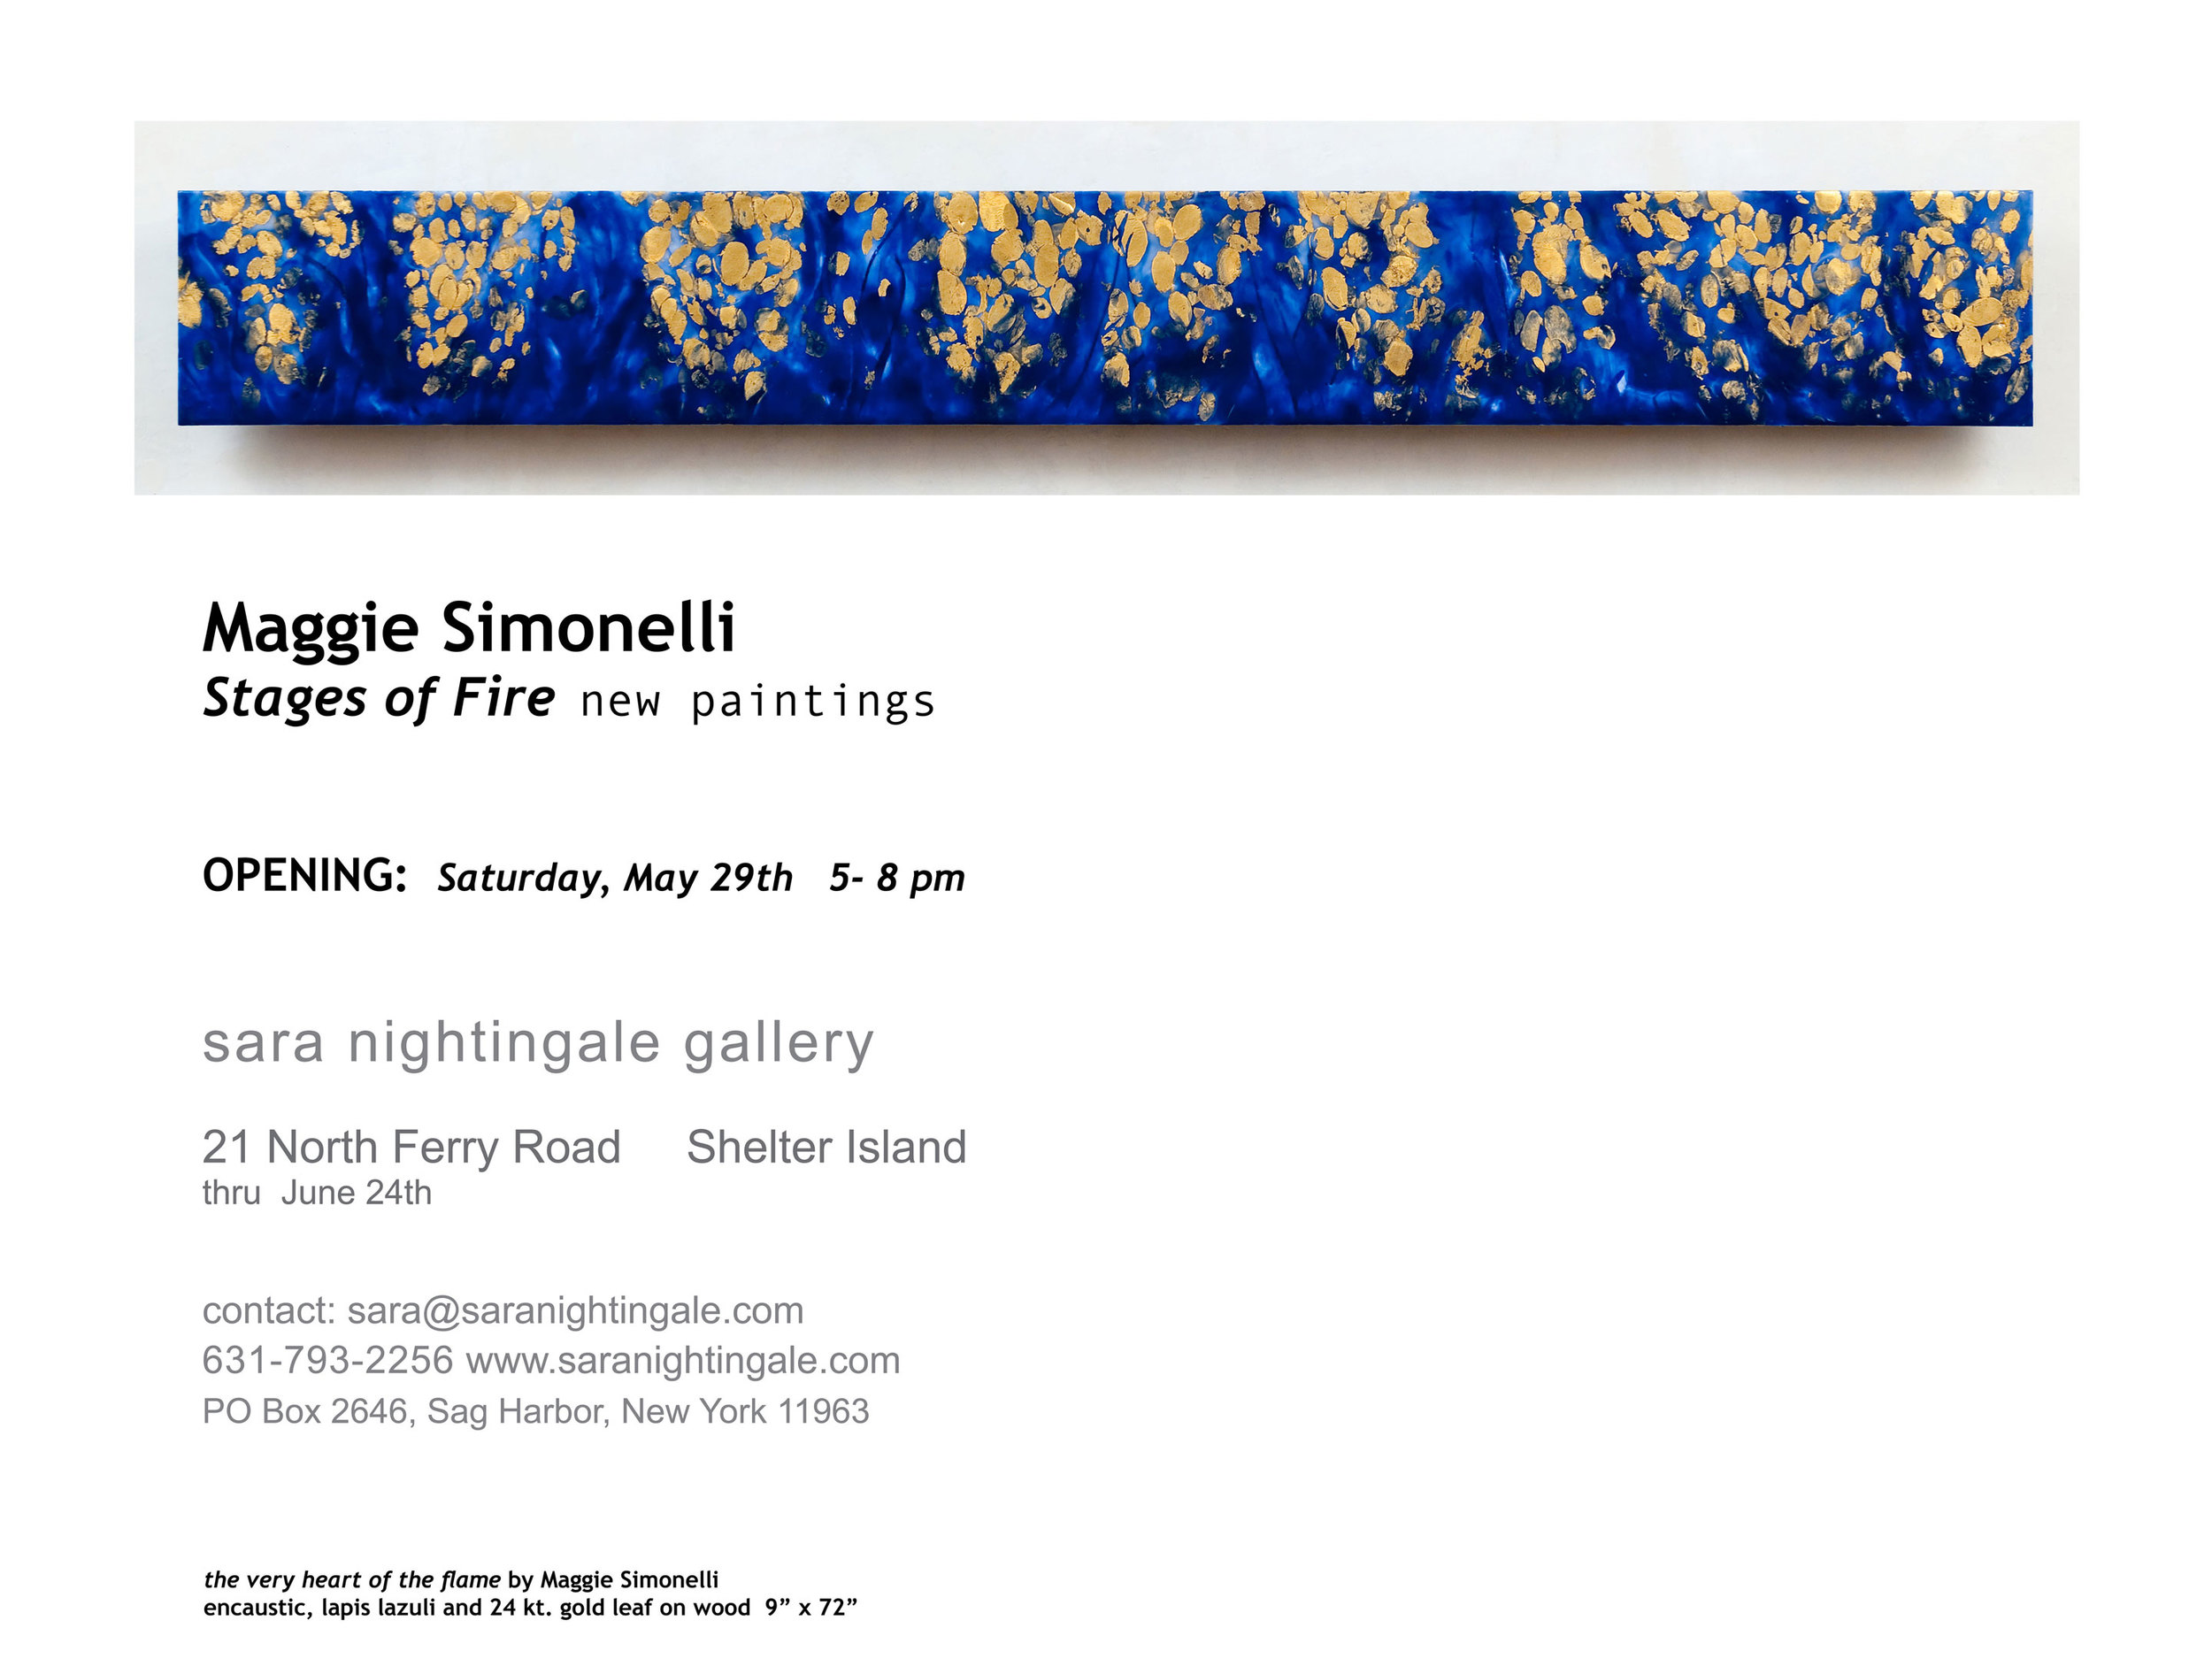 Maggie Simonelli's painting exhibition,  Stages of Fire  invitation for Sara Nightingale Gallery 2010